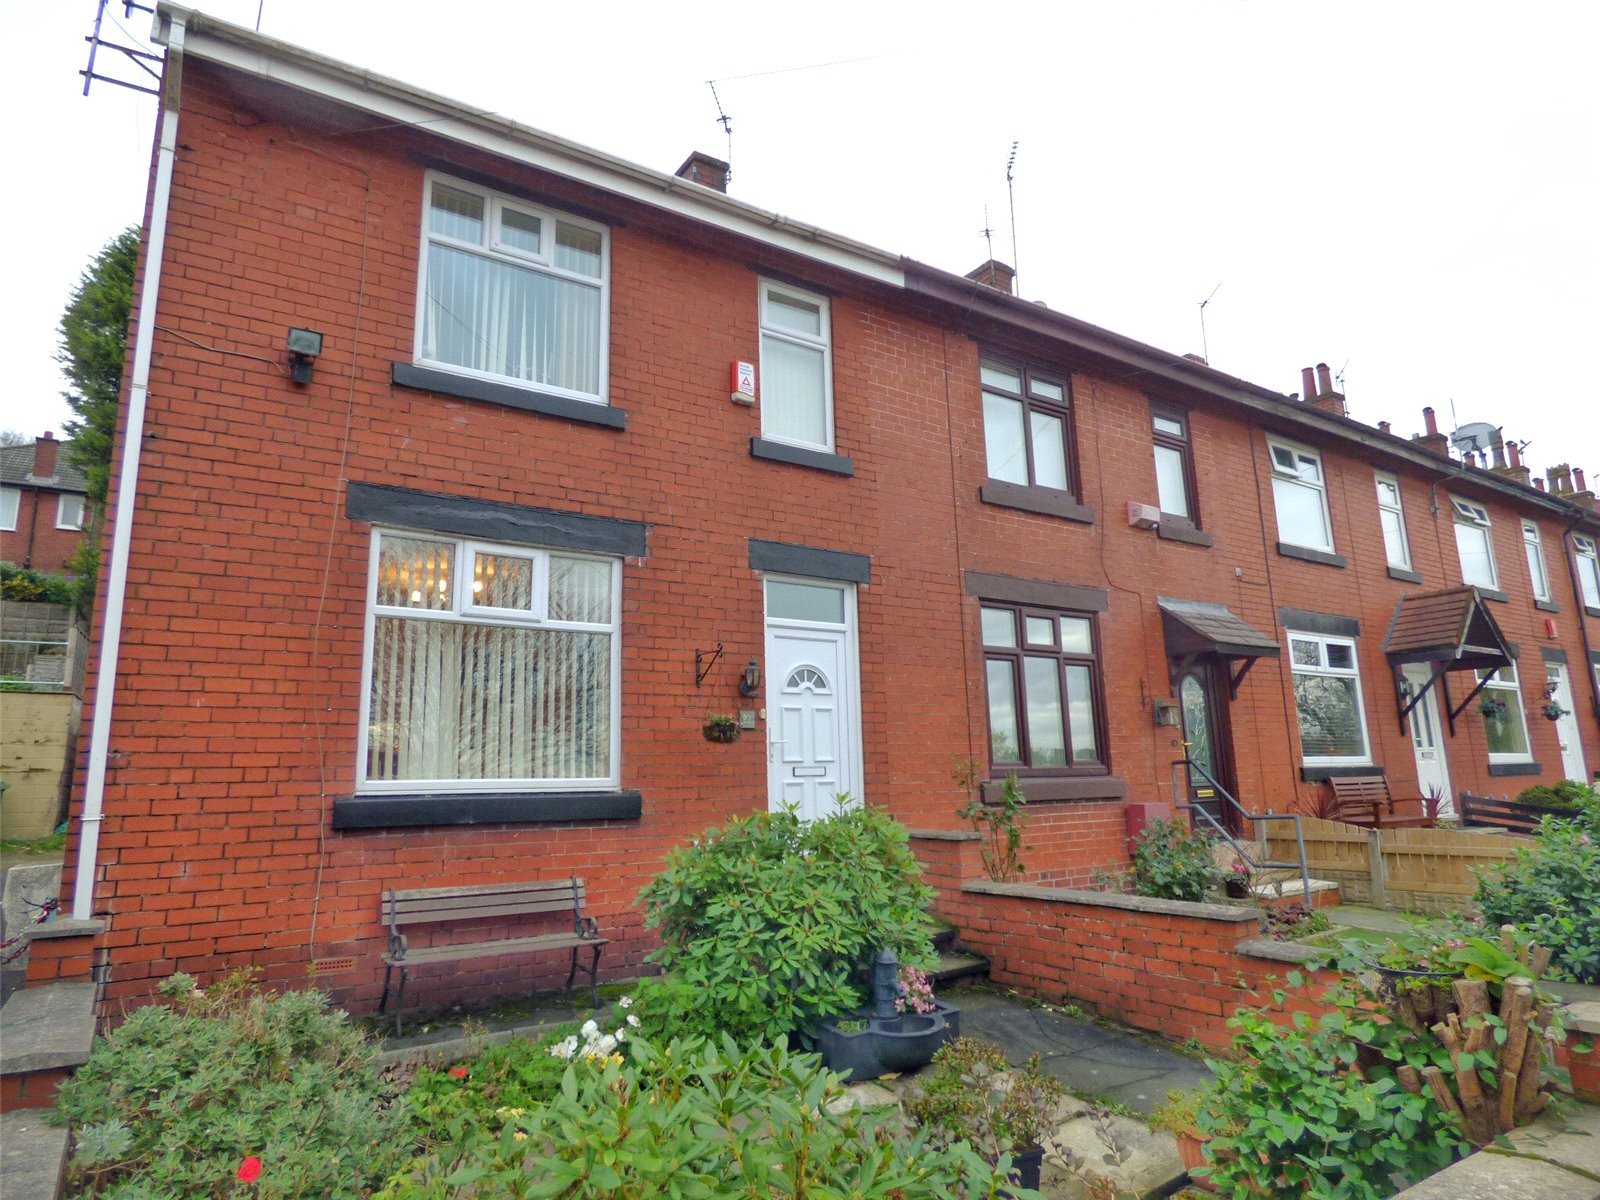 2 Bedrooms End Of Terrace House for sale in Hollins Avenue, Lees, Oldham, Greater Manchester, OL4